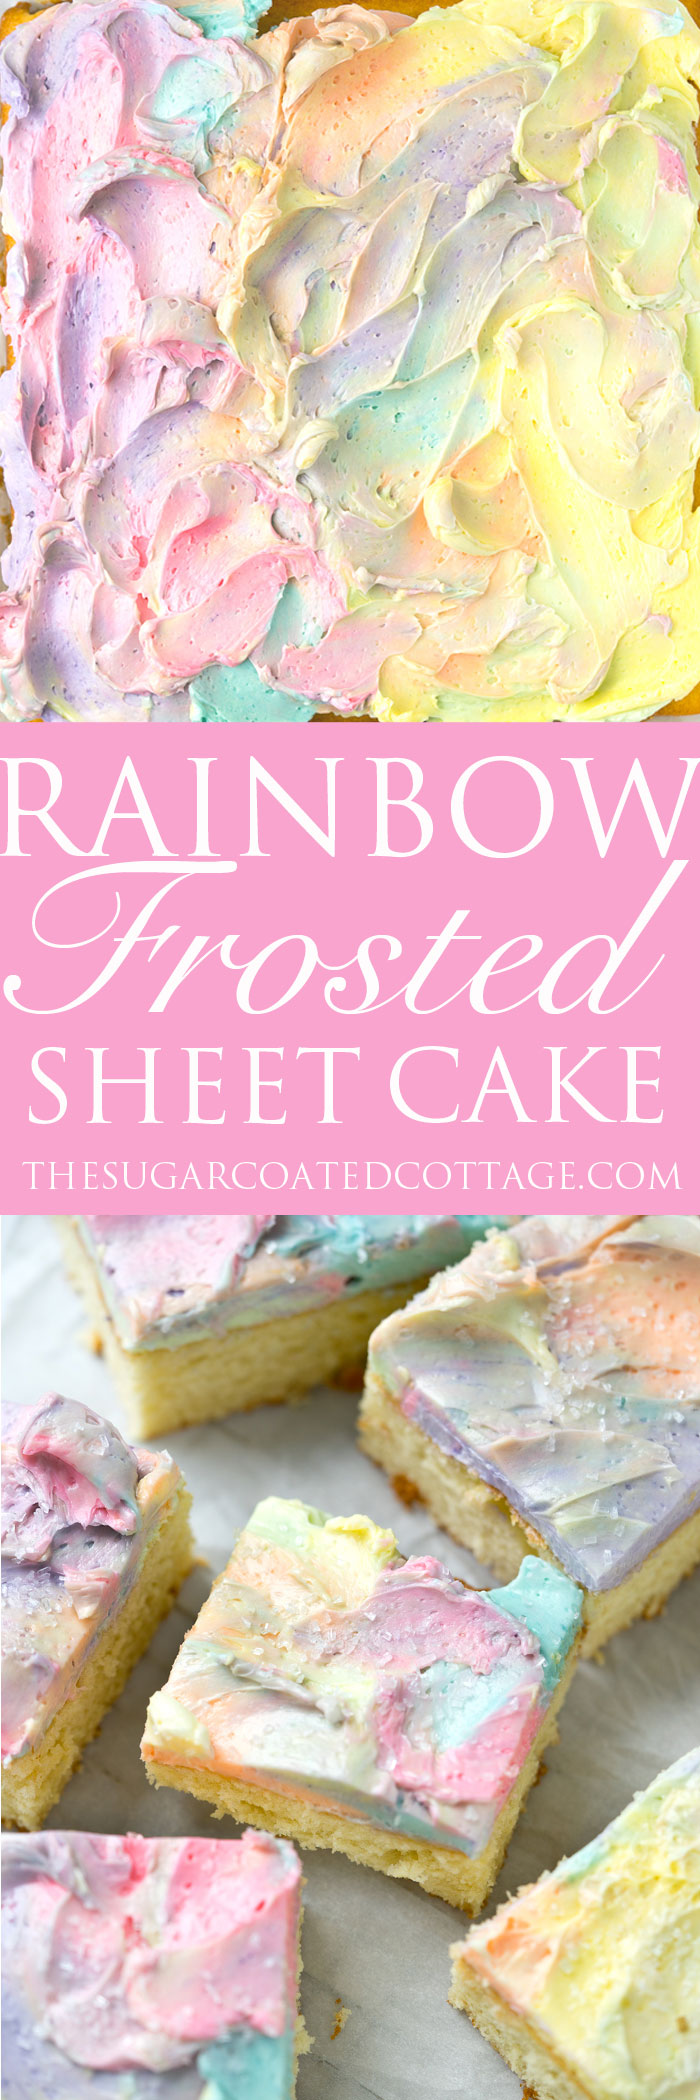 Rainbow Frosted Sheet Cake. I'm in love with this simple, moist yellow cake enrobed in a blanket of rainbow swirled swiss meringue buttercream. | thesugarcoatedcottage.com